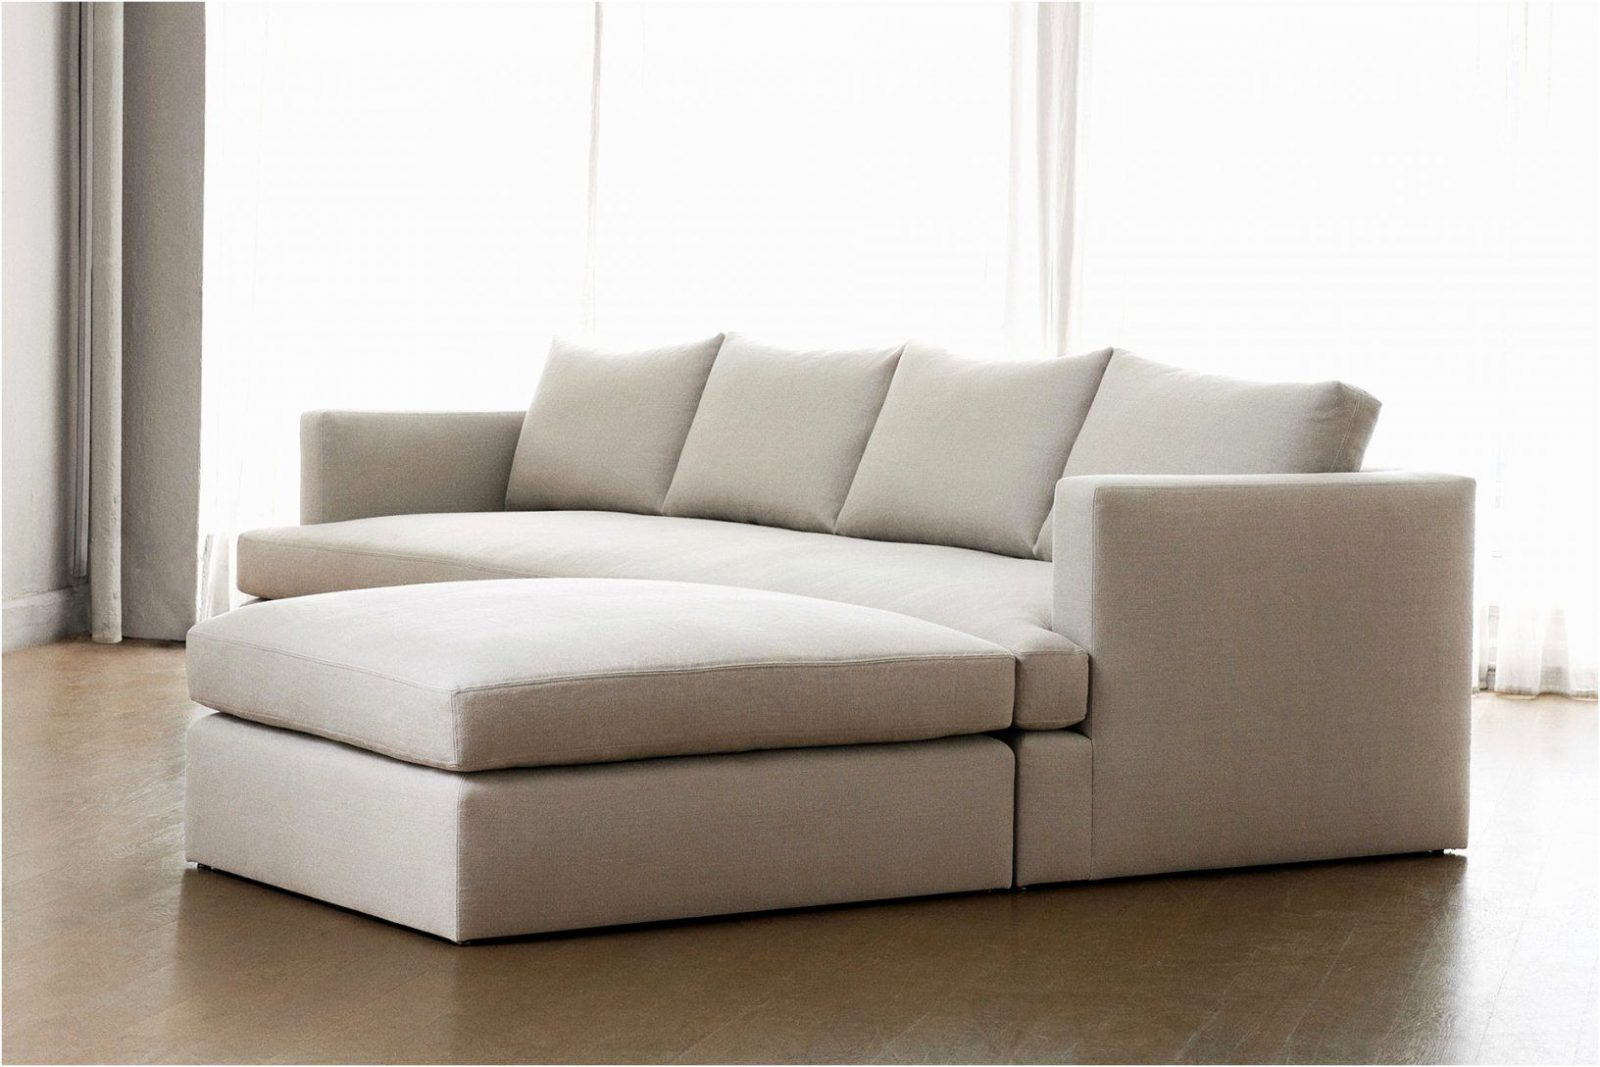 Sofa Hussen Ecksofa Good Interesting Sofa Hussen Ecksofa Schn Sofas von Hussen Ecksofa Ottomane Links Photo